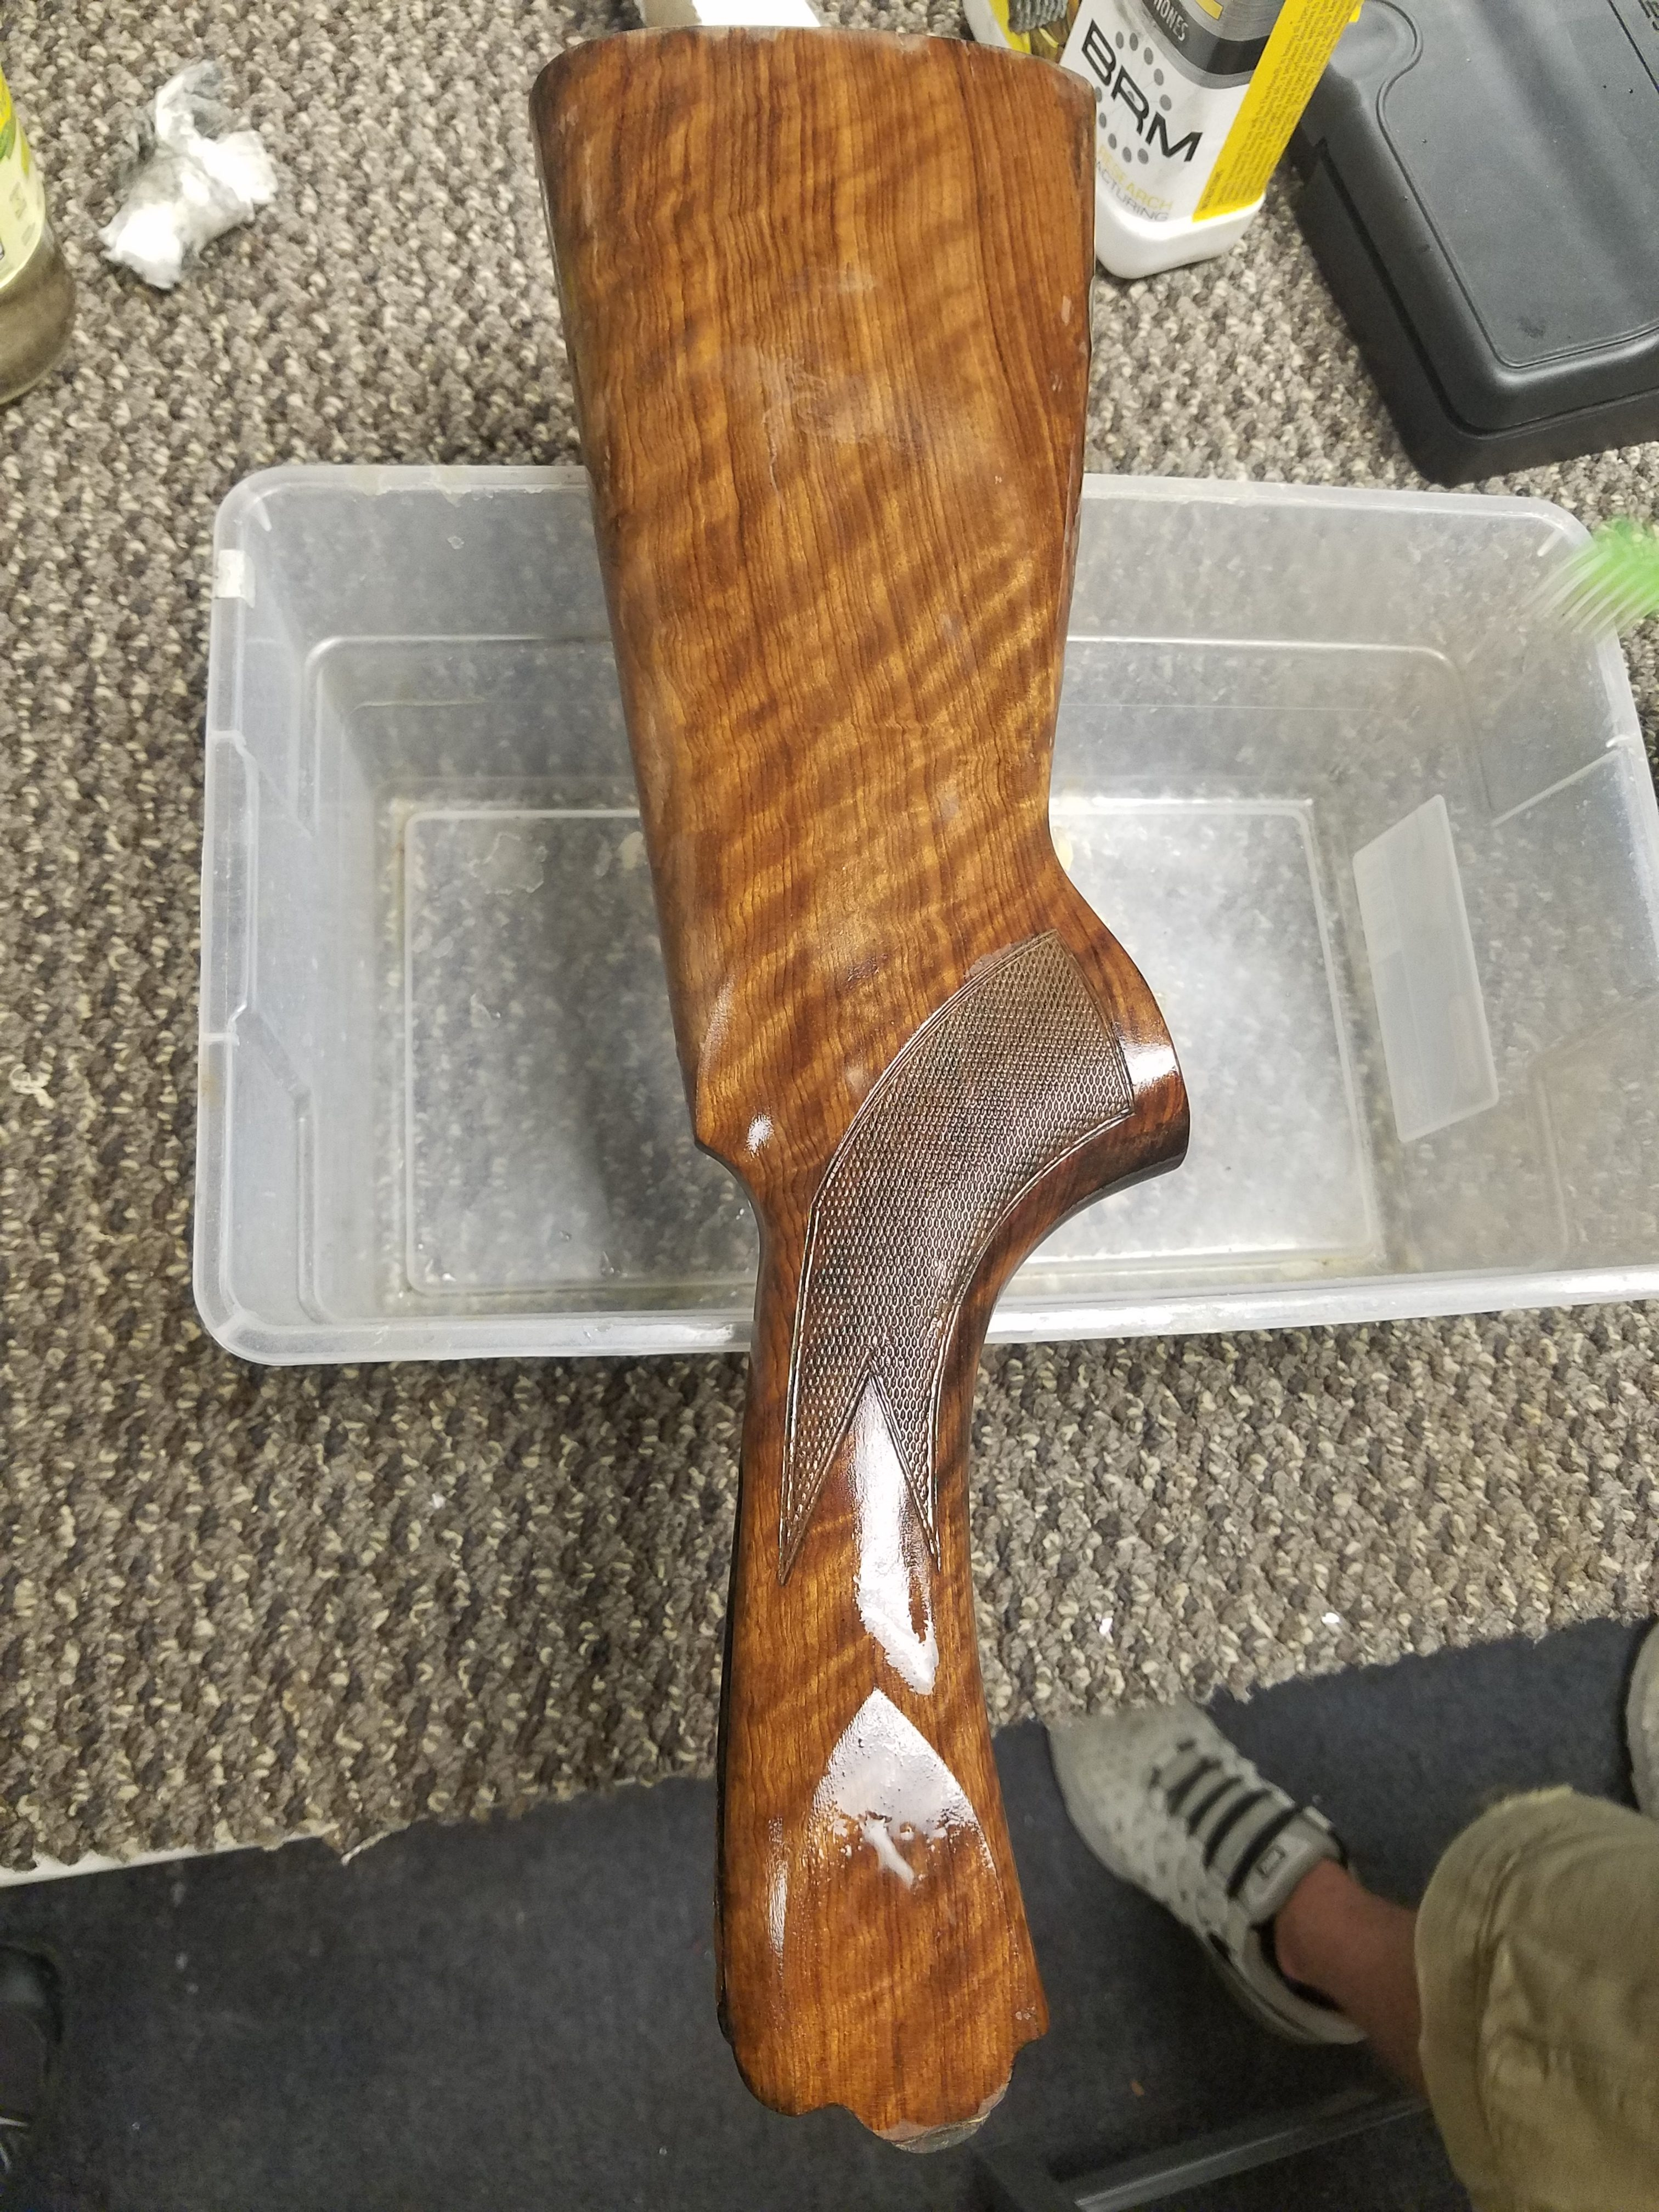 Completed flood damage repair to Beretta 686